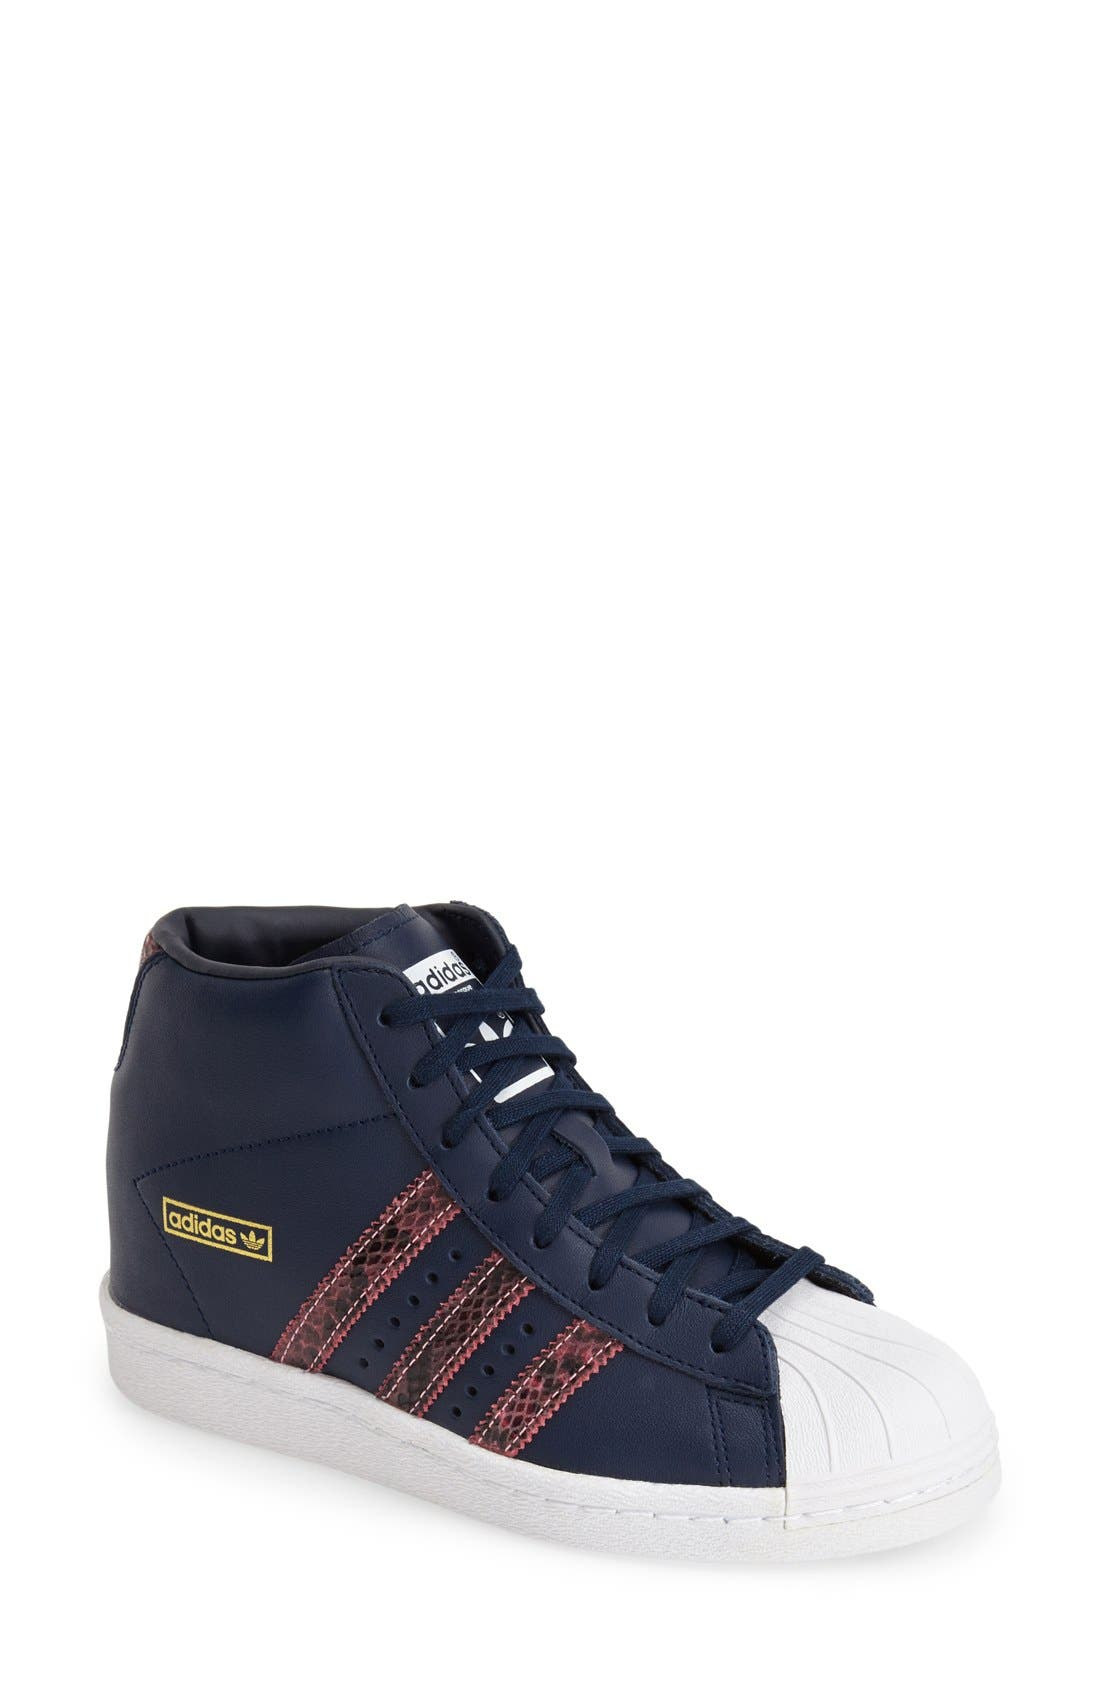 Alternate Image 1 Selected - adidas 'Superstar Up' Hidden Wedge Leather Sneaker (Women)